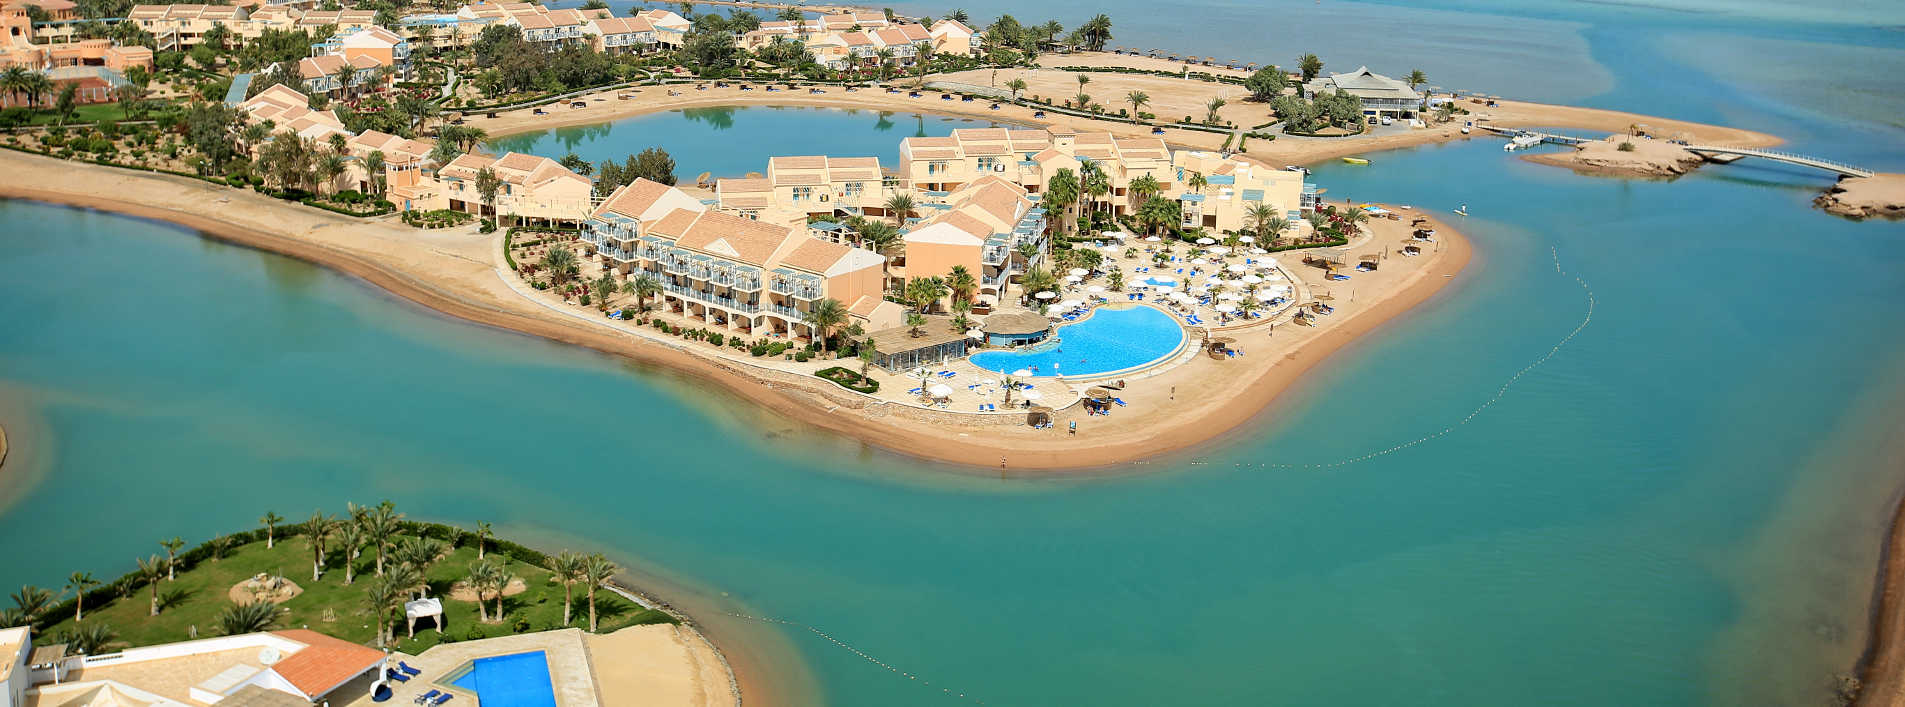 Mövenpick Resort and Spa El Gouna Bird eye Beach view